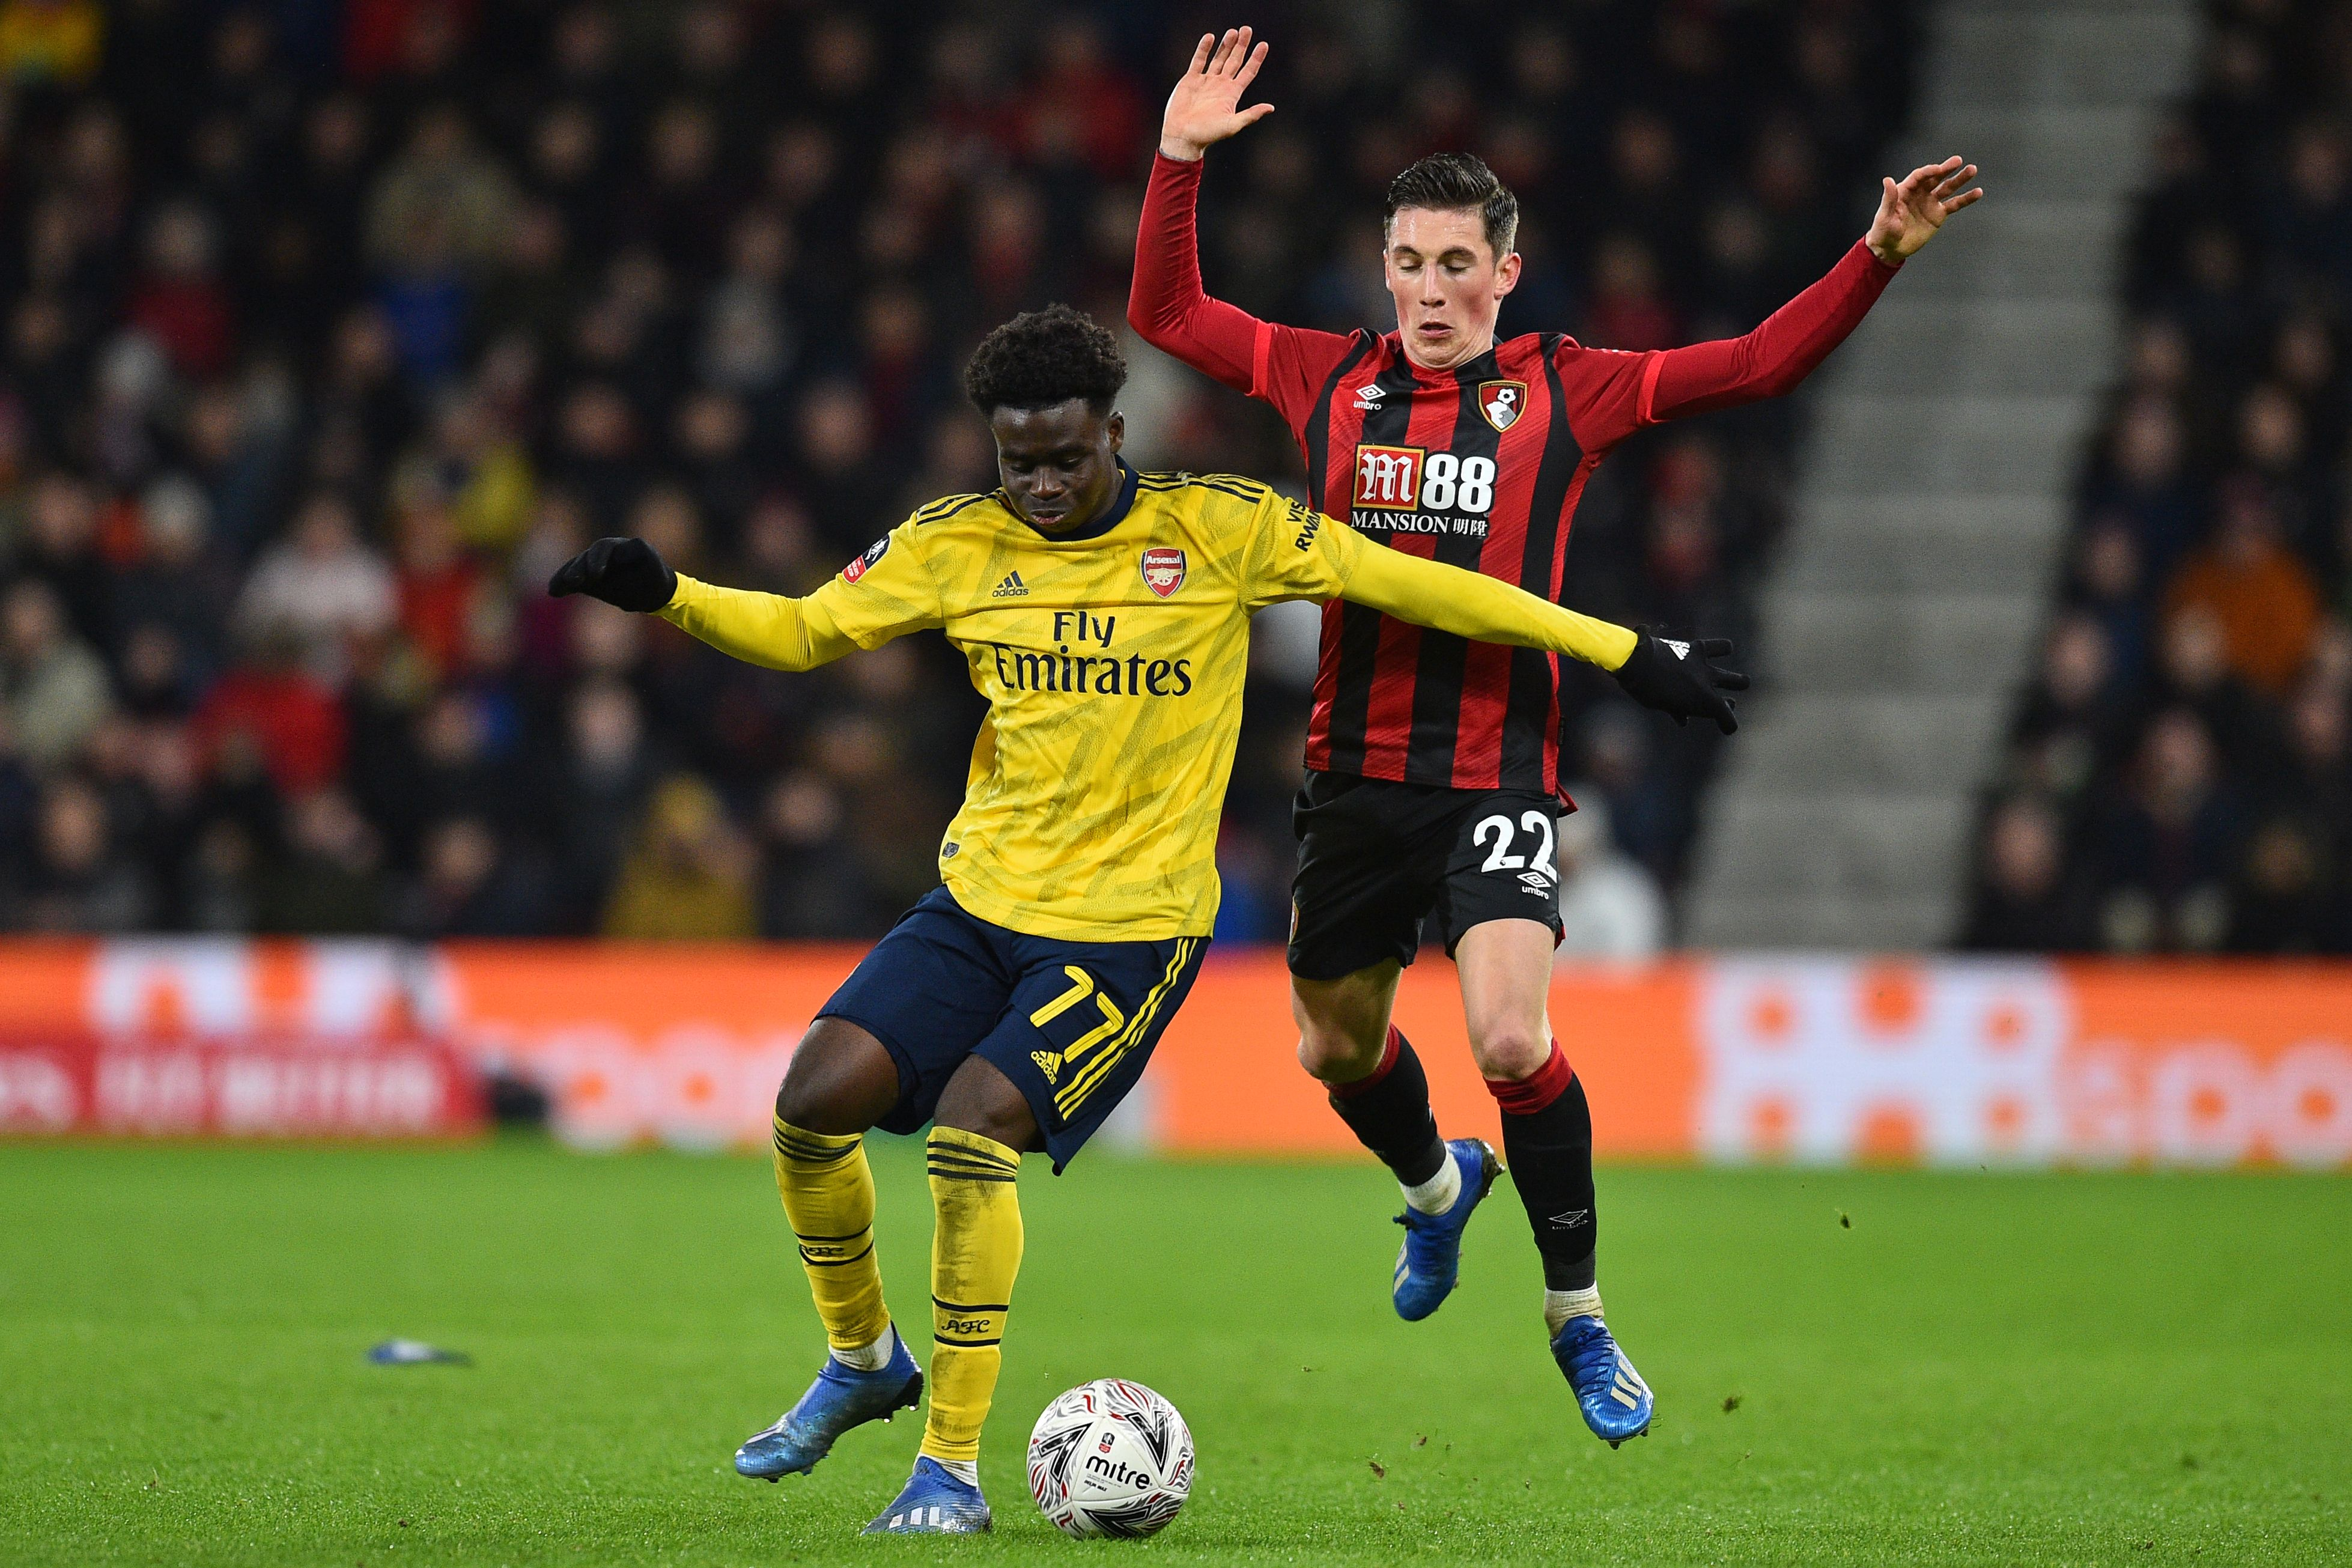 Bukayo Saka was the star of the show for Arsenal (Photo by GLYN KIRK/AFP via Getty Images)